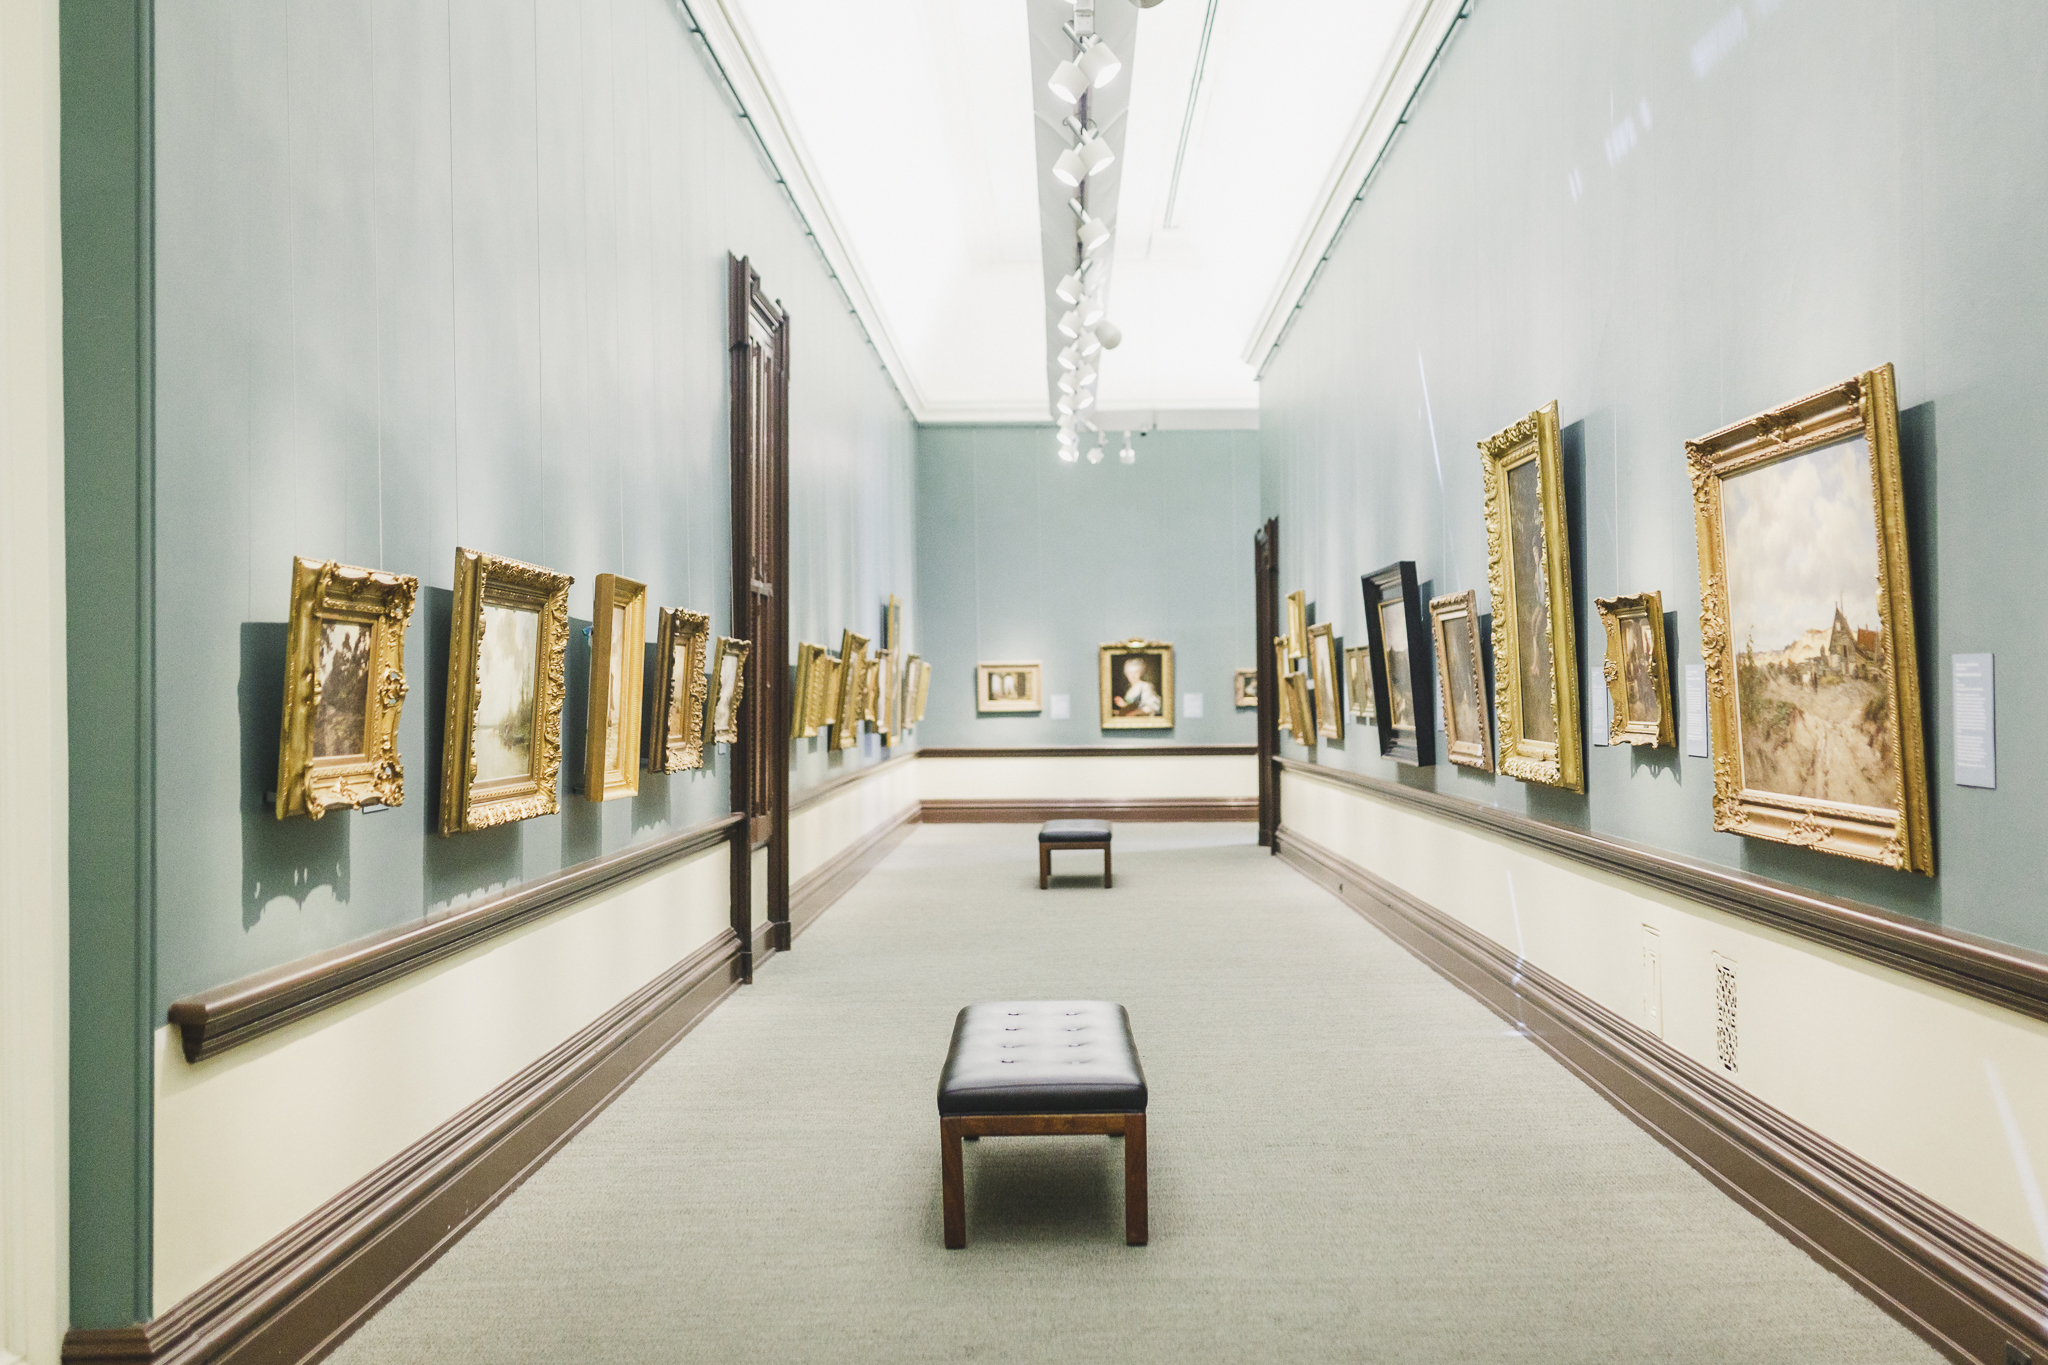 Crocker Art Museum | Lenkaland Photography